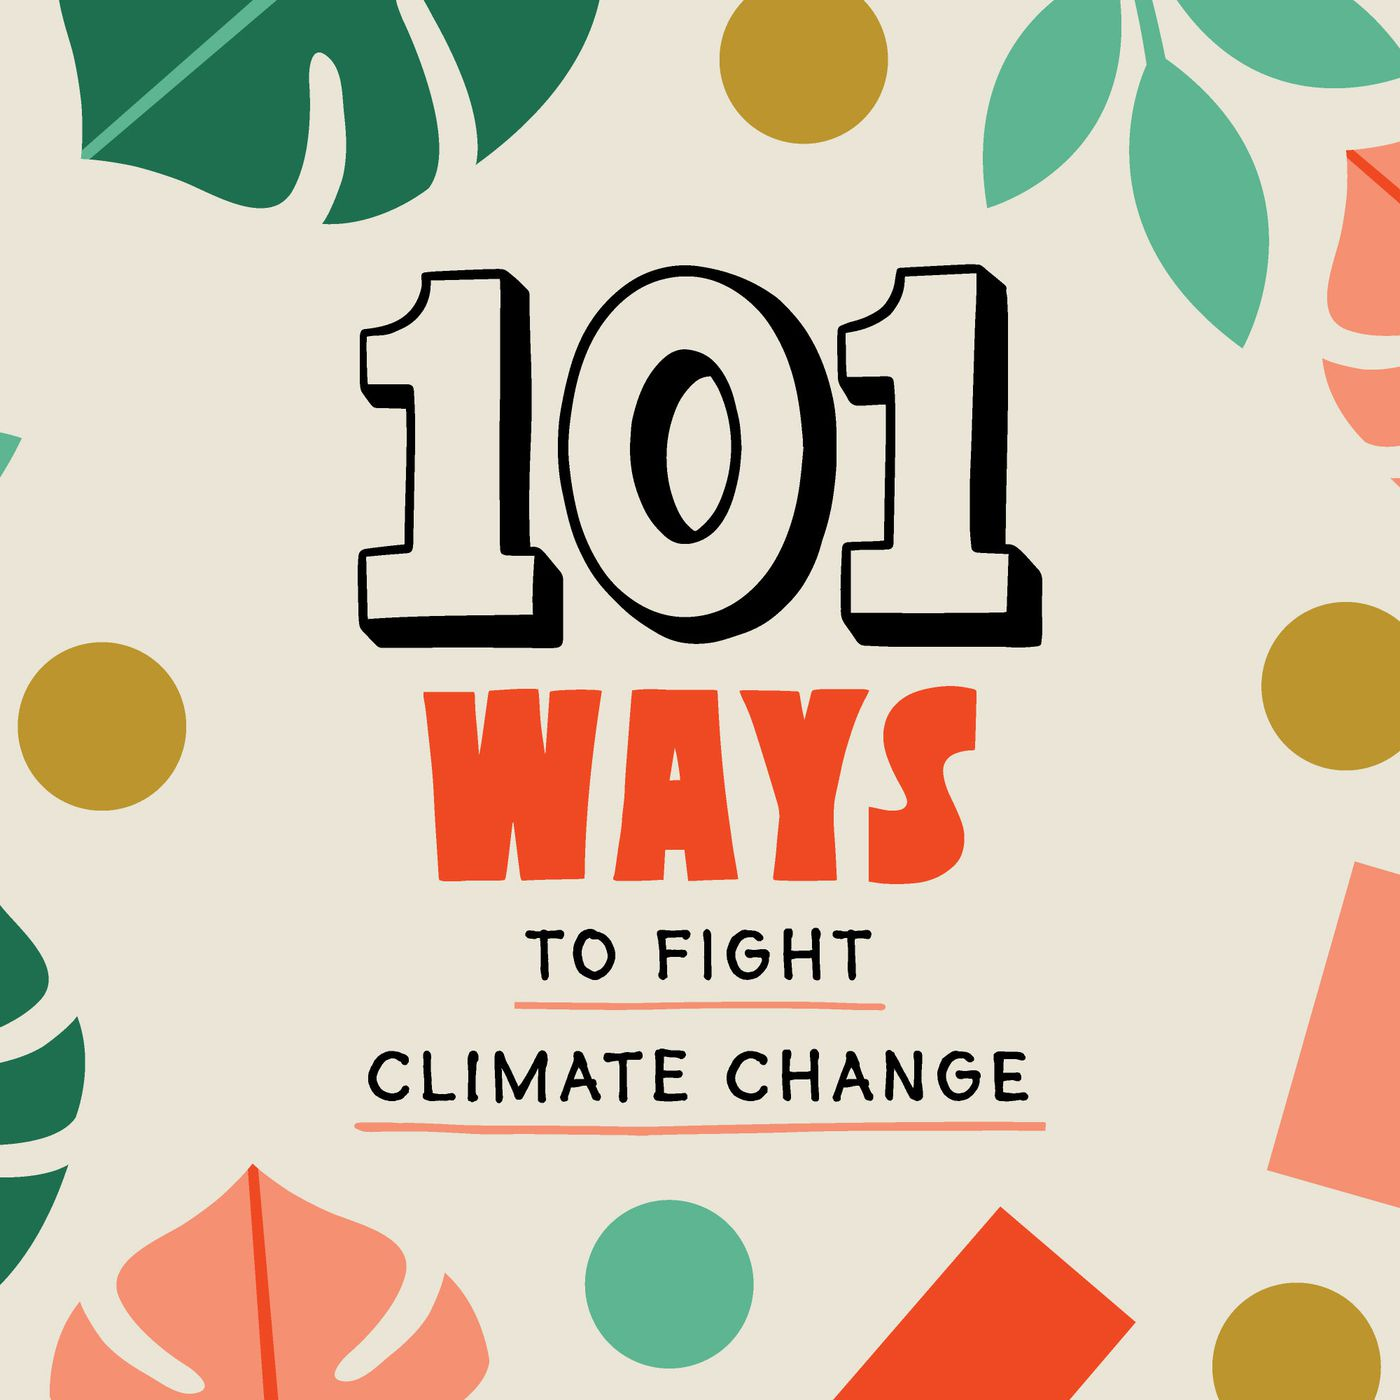 Earth Day 2019: 101 ways to fight climate change - Curbed